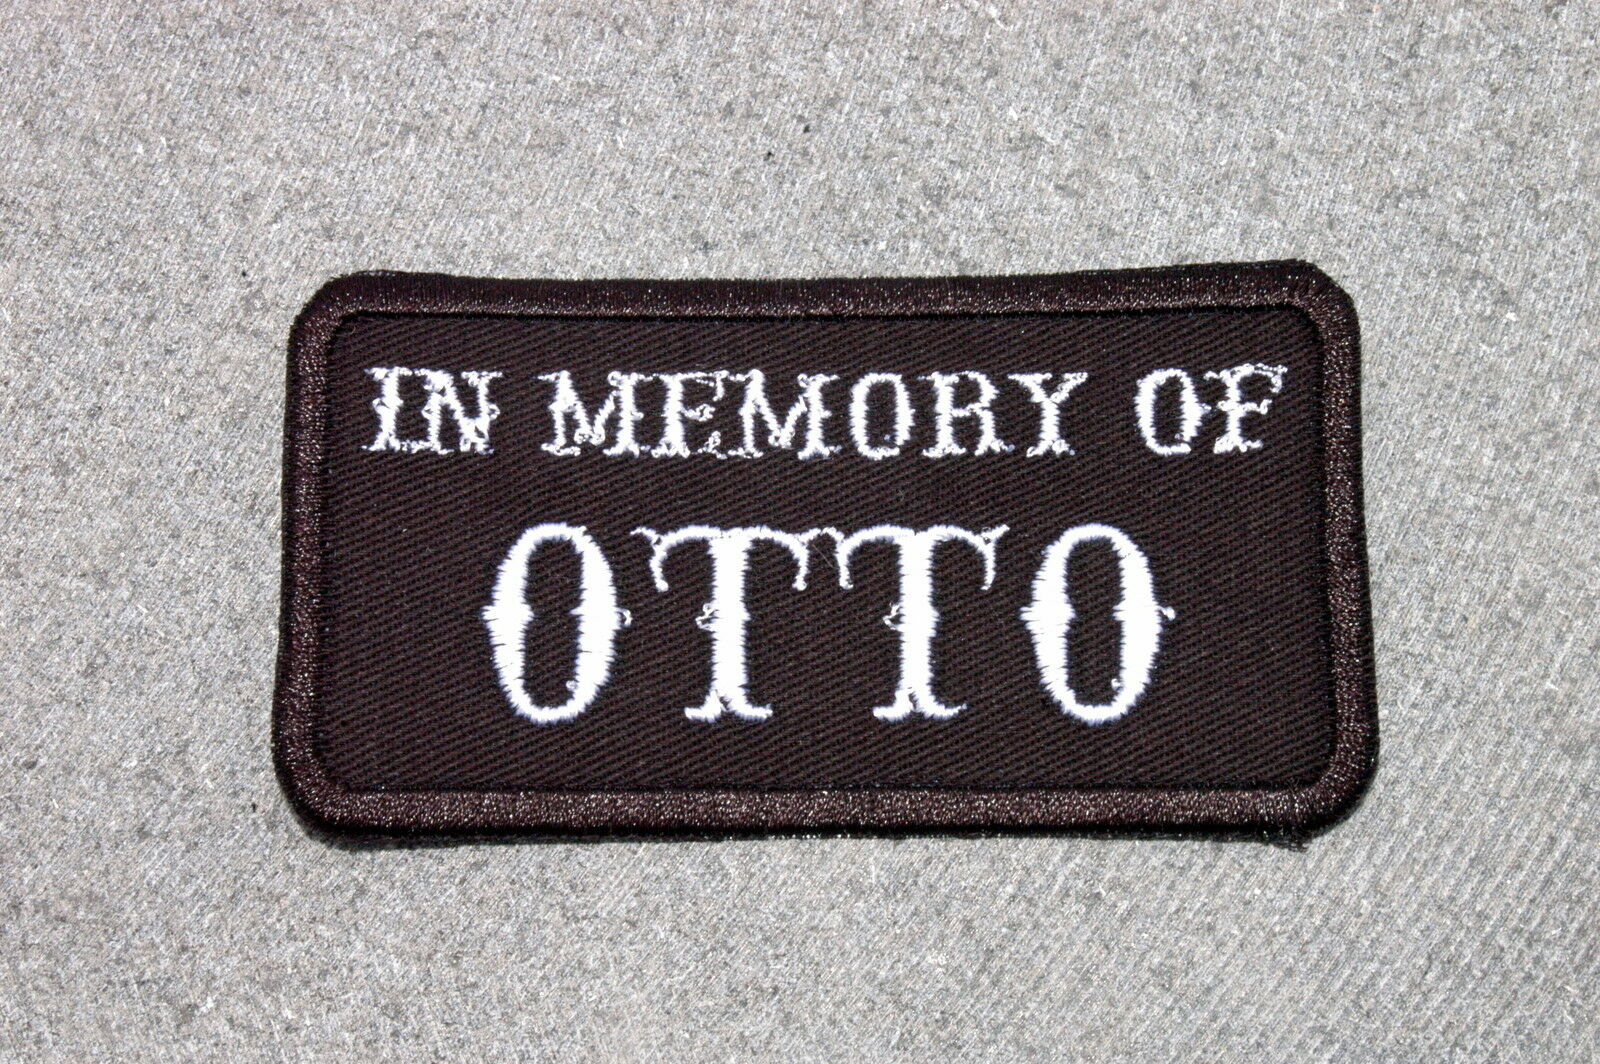 0tto Online Shop In Memory Of Otto Biker Vest Motorcycle Patch Anarchy